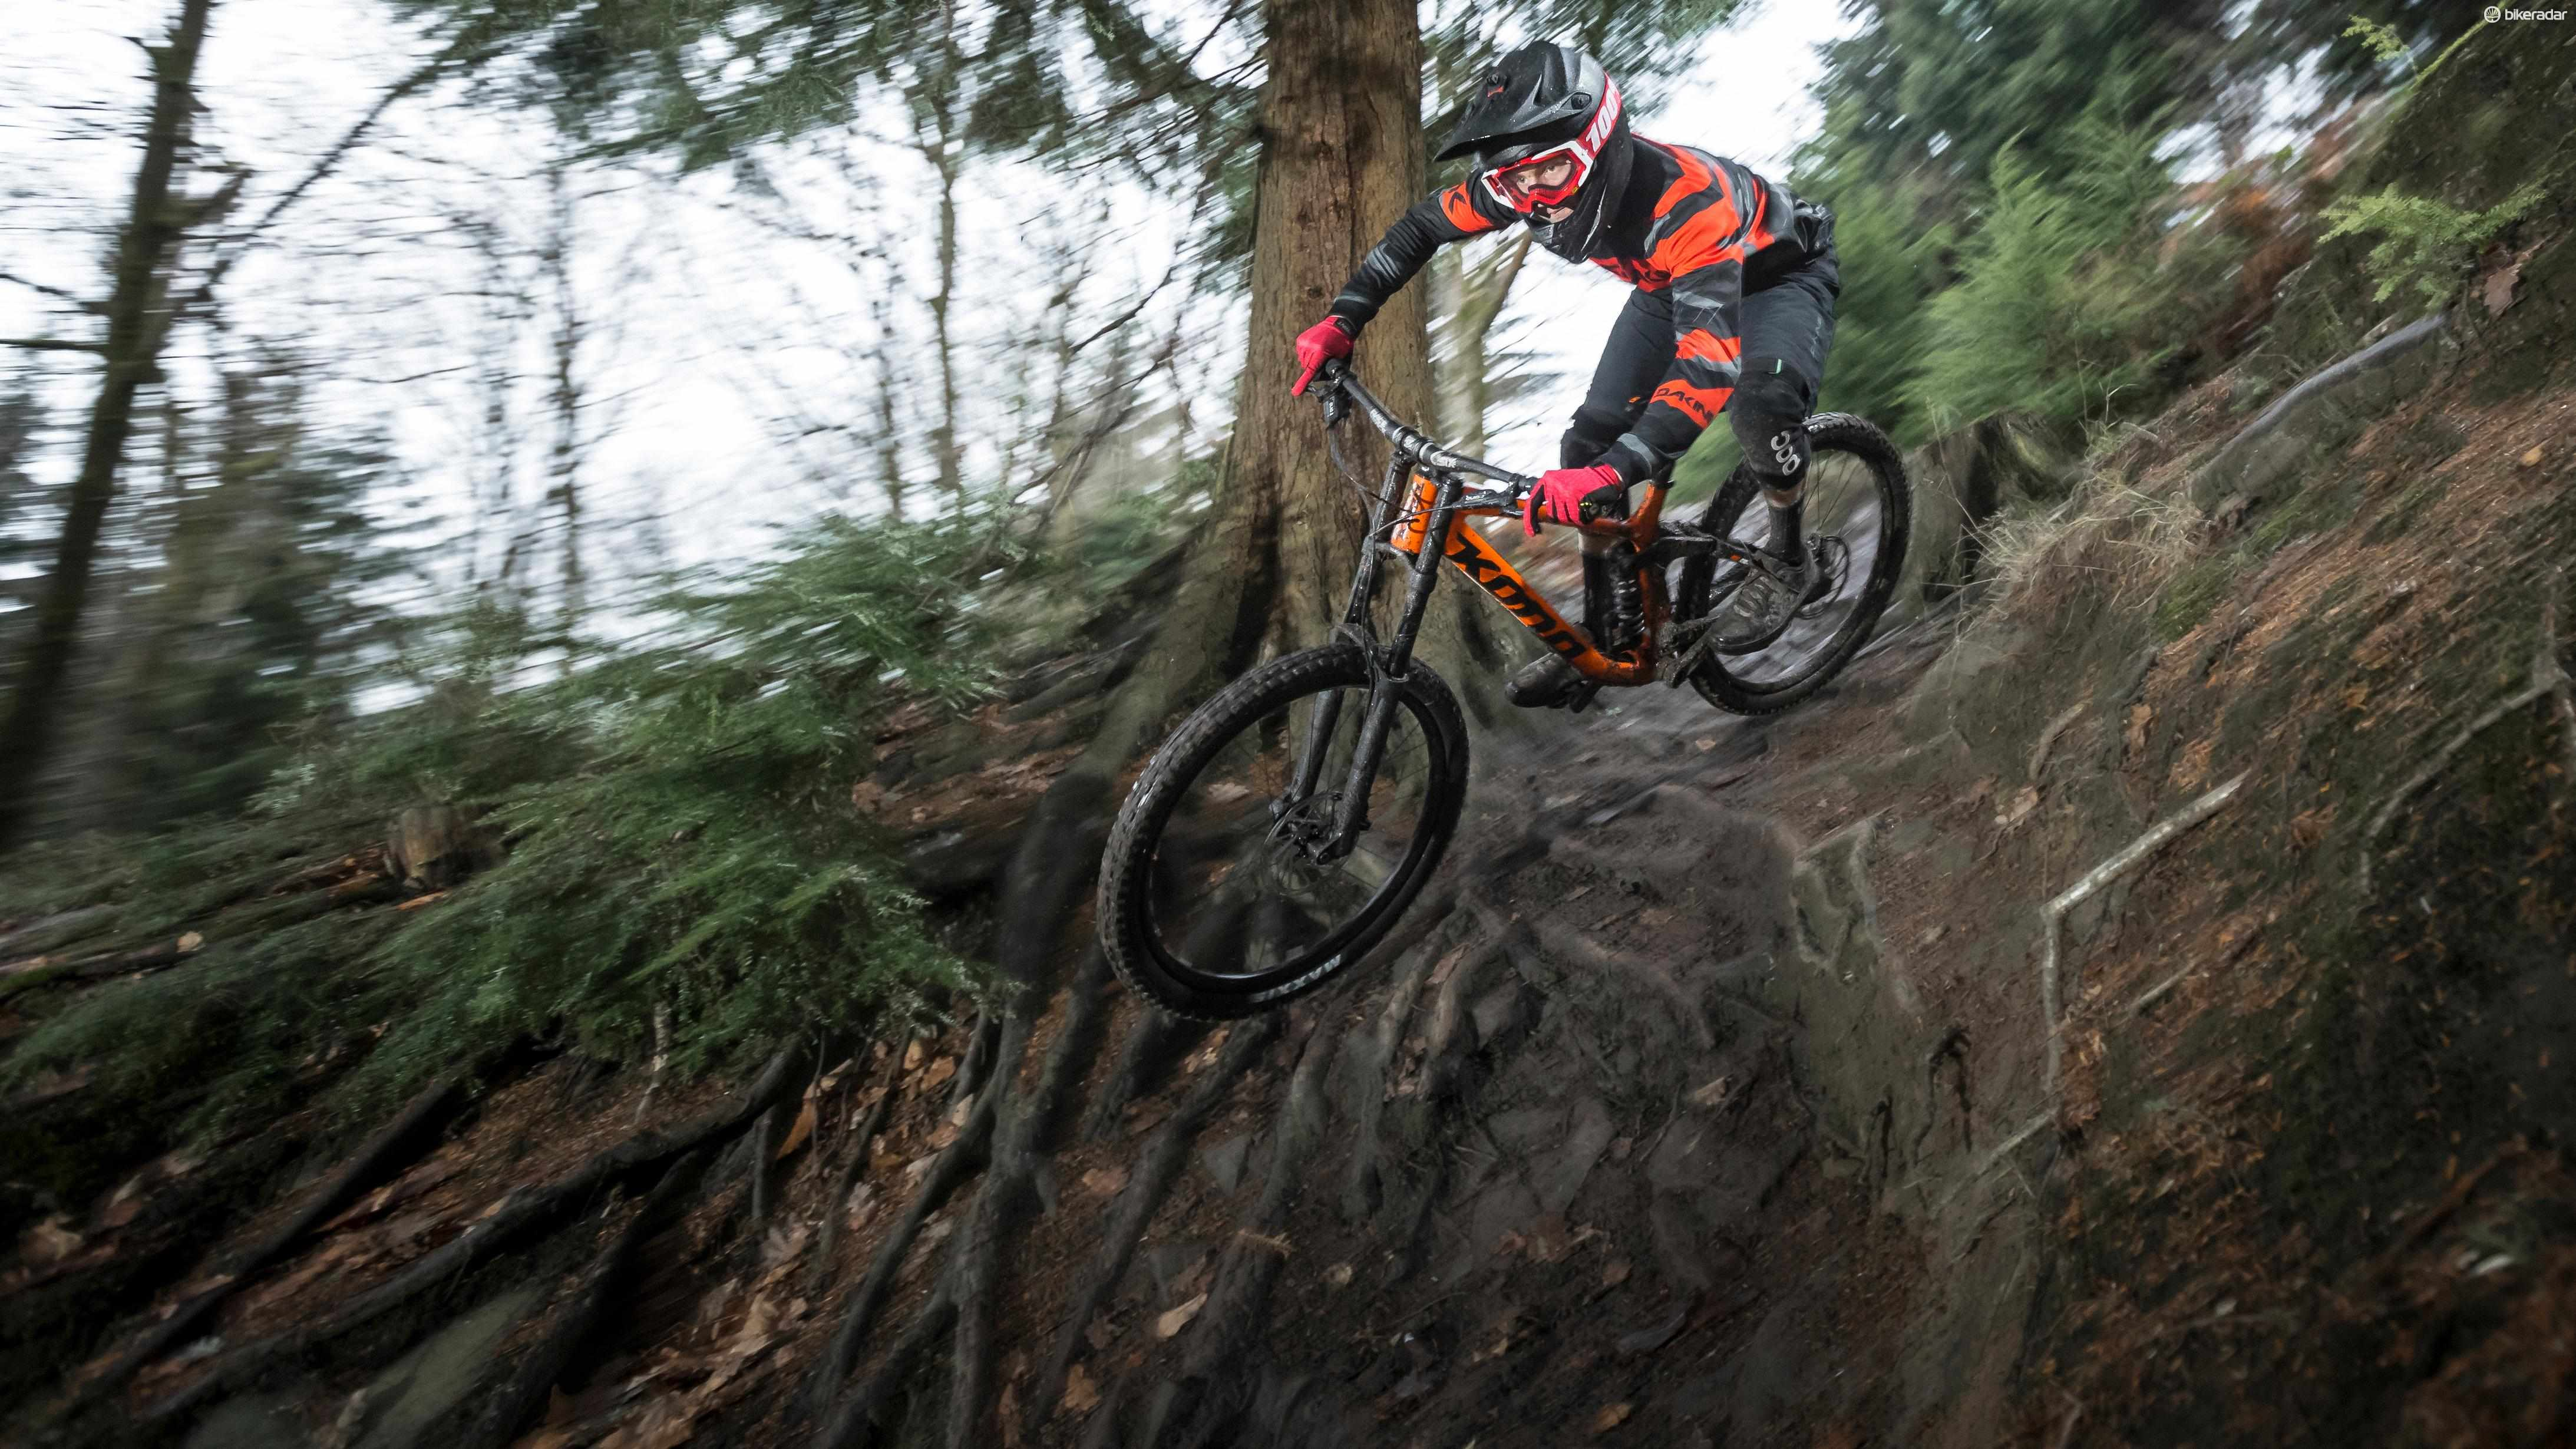 MBUK staff writer Ed Thomsett testing the Kona Operator DL at the Forest of Dean